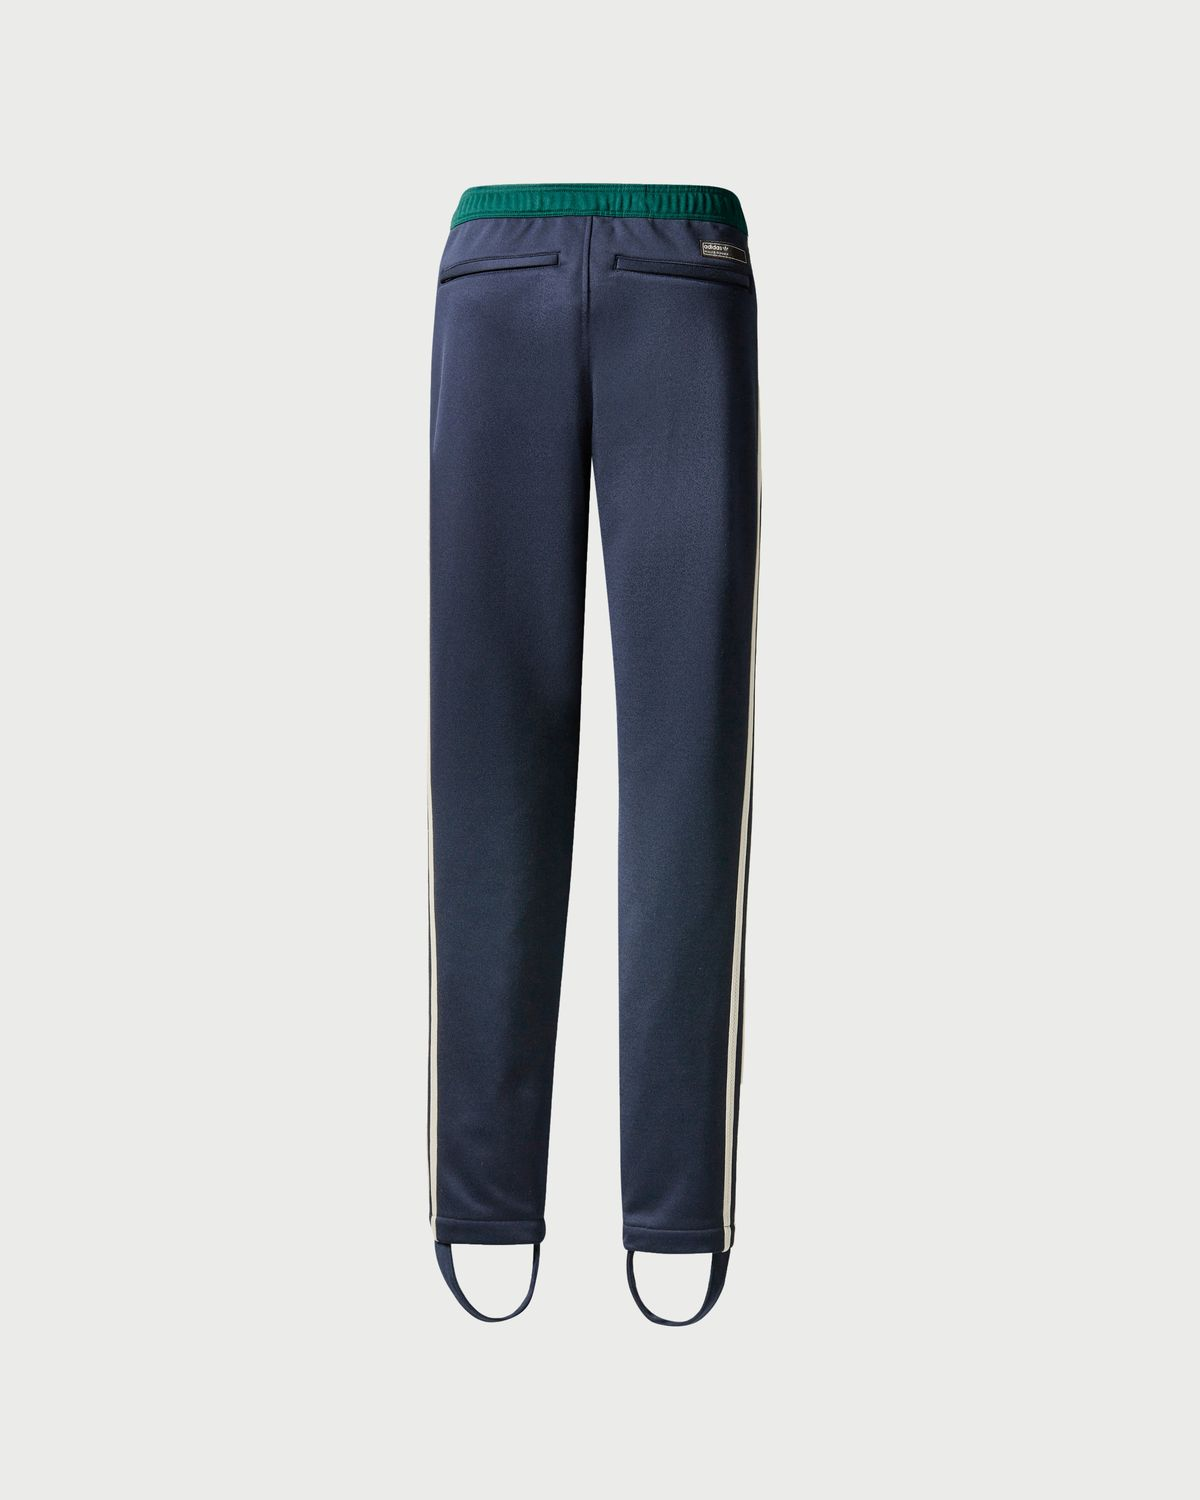 Adidas x Wales Bonner - Lovers Trousers Navy - Image 2